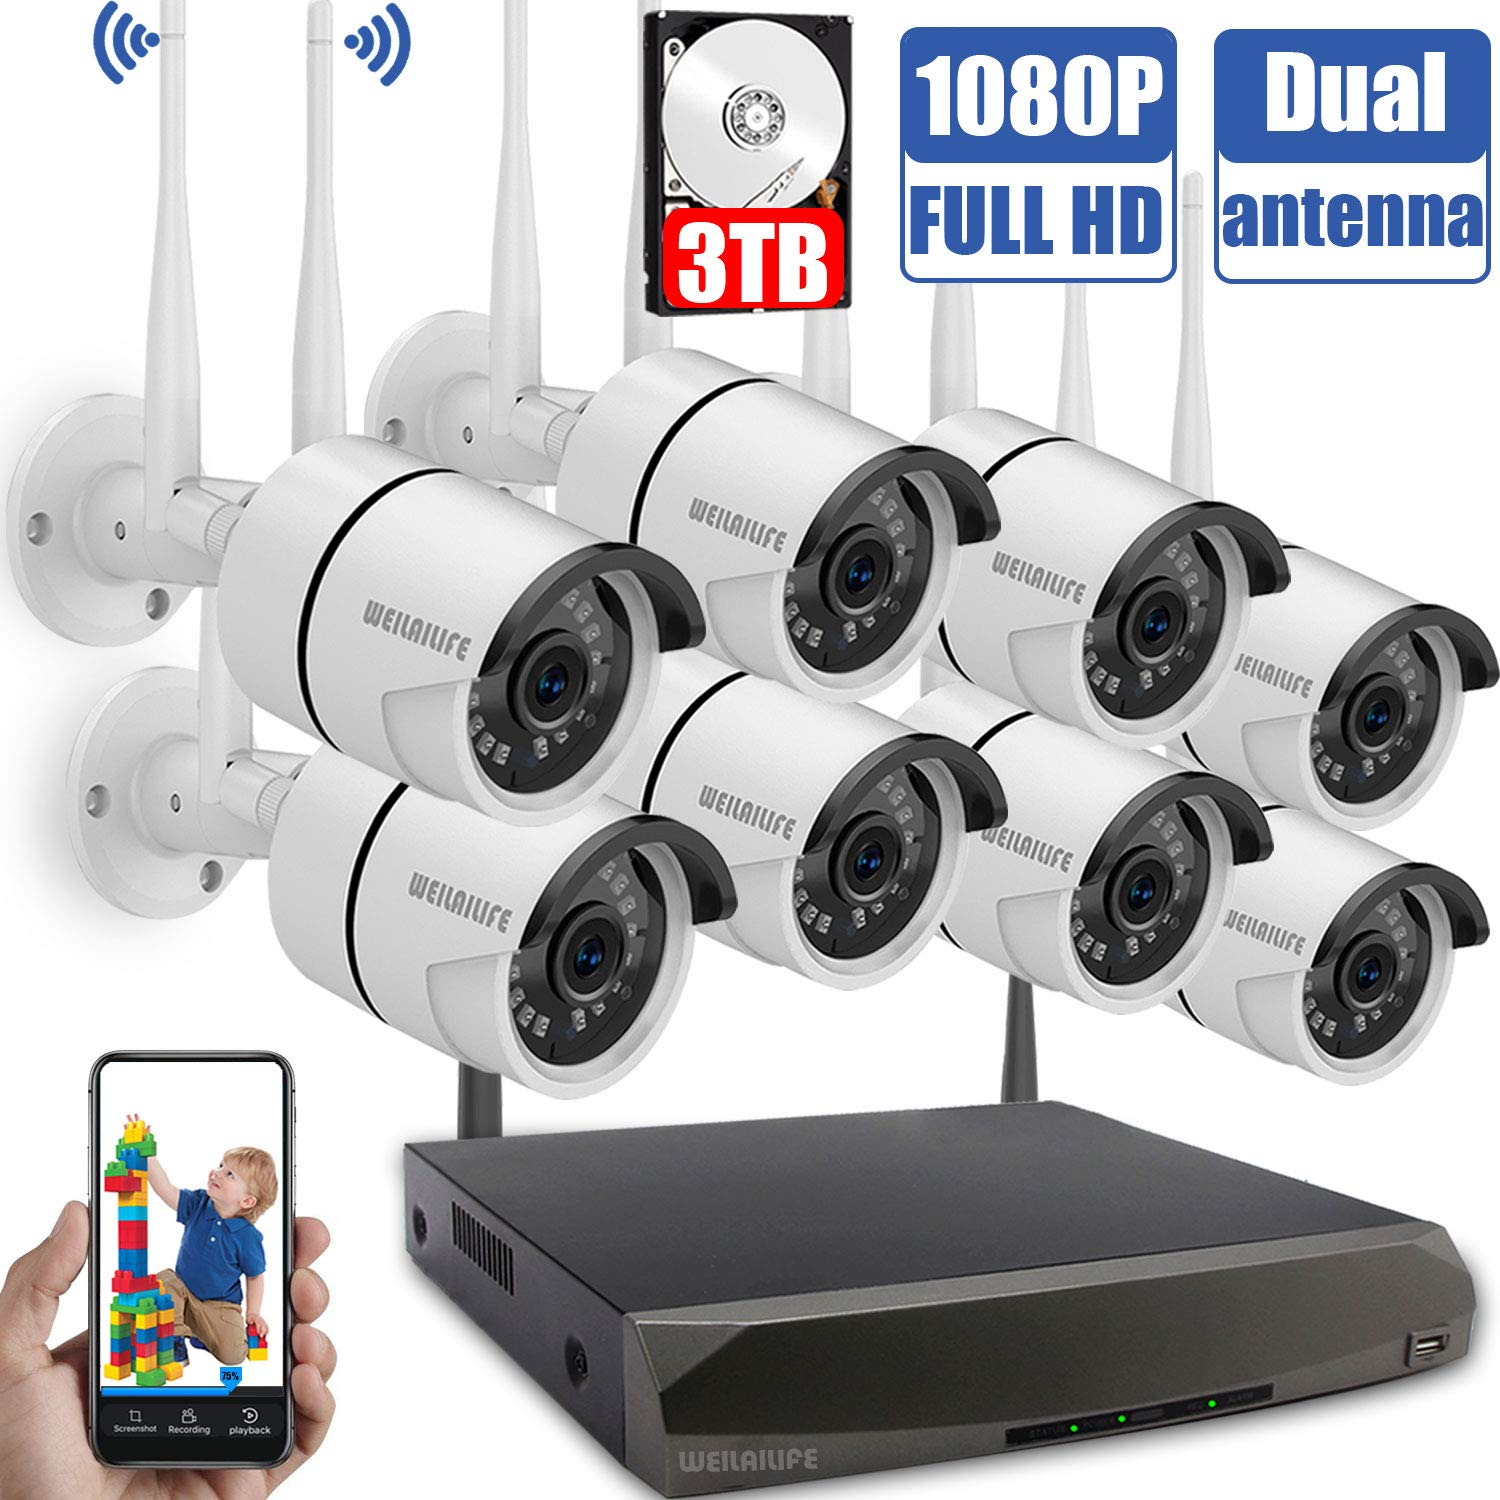 Wireless Security Camera System,1080P Outdoor Home WiFi Security Surveillance Camera System, 8Pcs 2.0 Megapixel 1080P Wireless IP Camera with 3TB Hard Drive, Night Vision, Remote View by WEILAILIFE